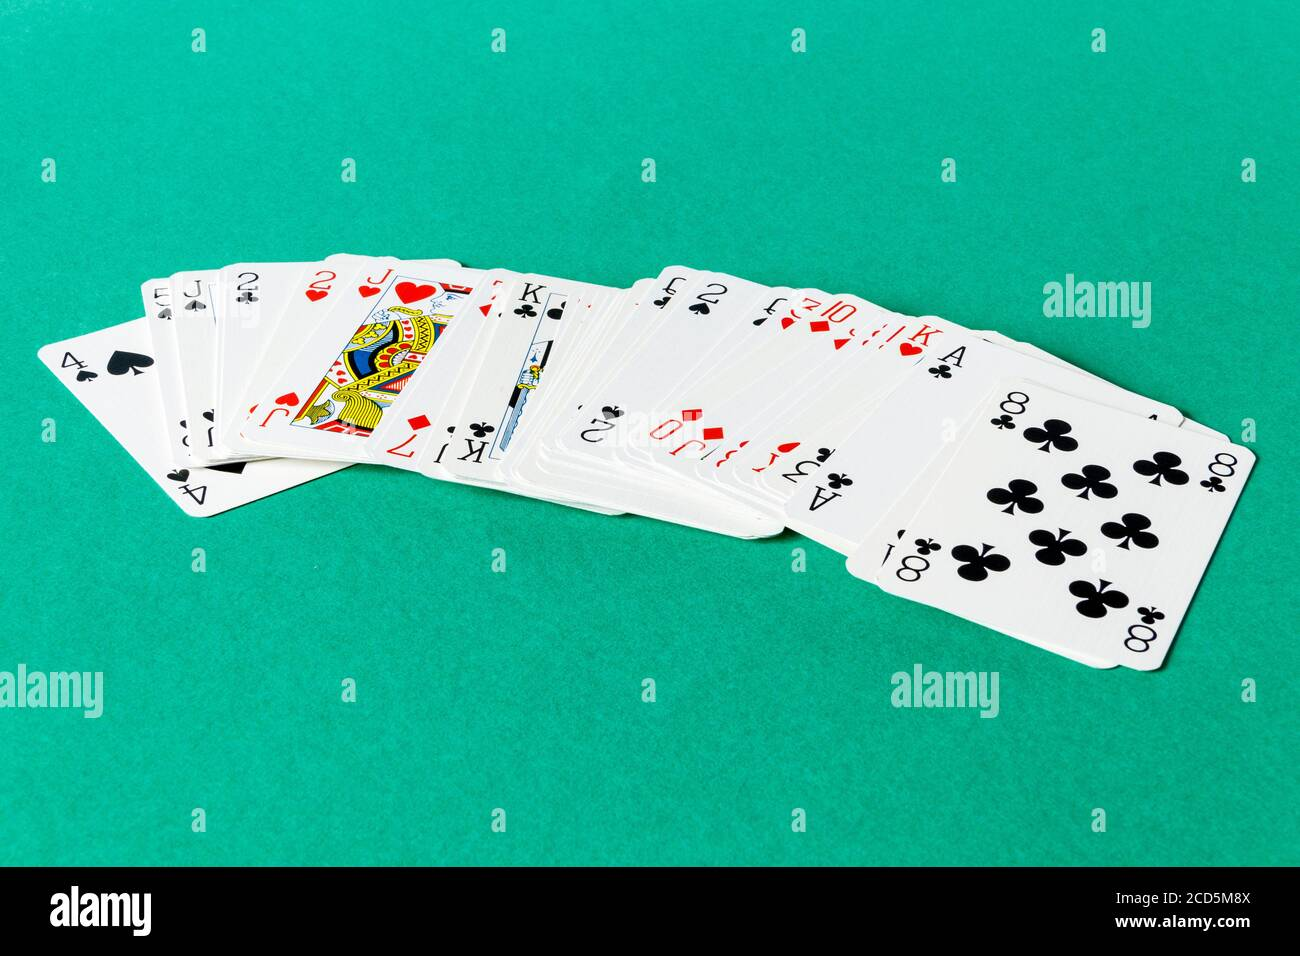 a pack of playing cards loosely fanned out on a card table 2CD5M8X